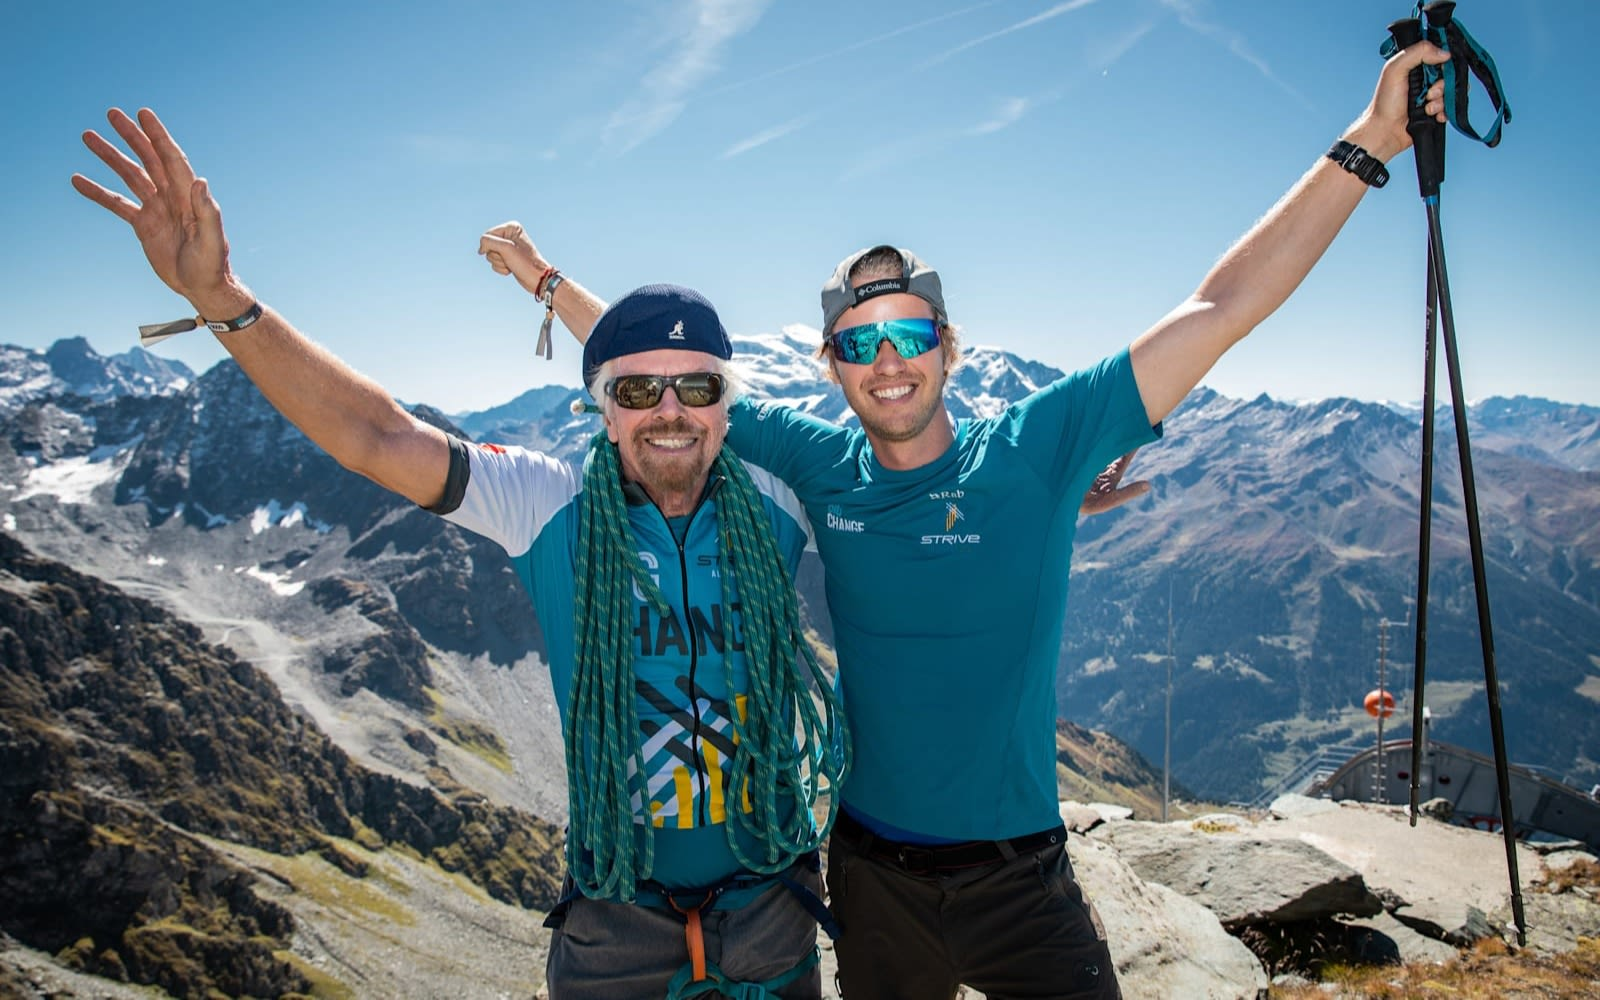 Richard Branson with Sam Branson on snowy mountain